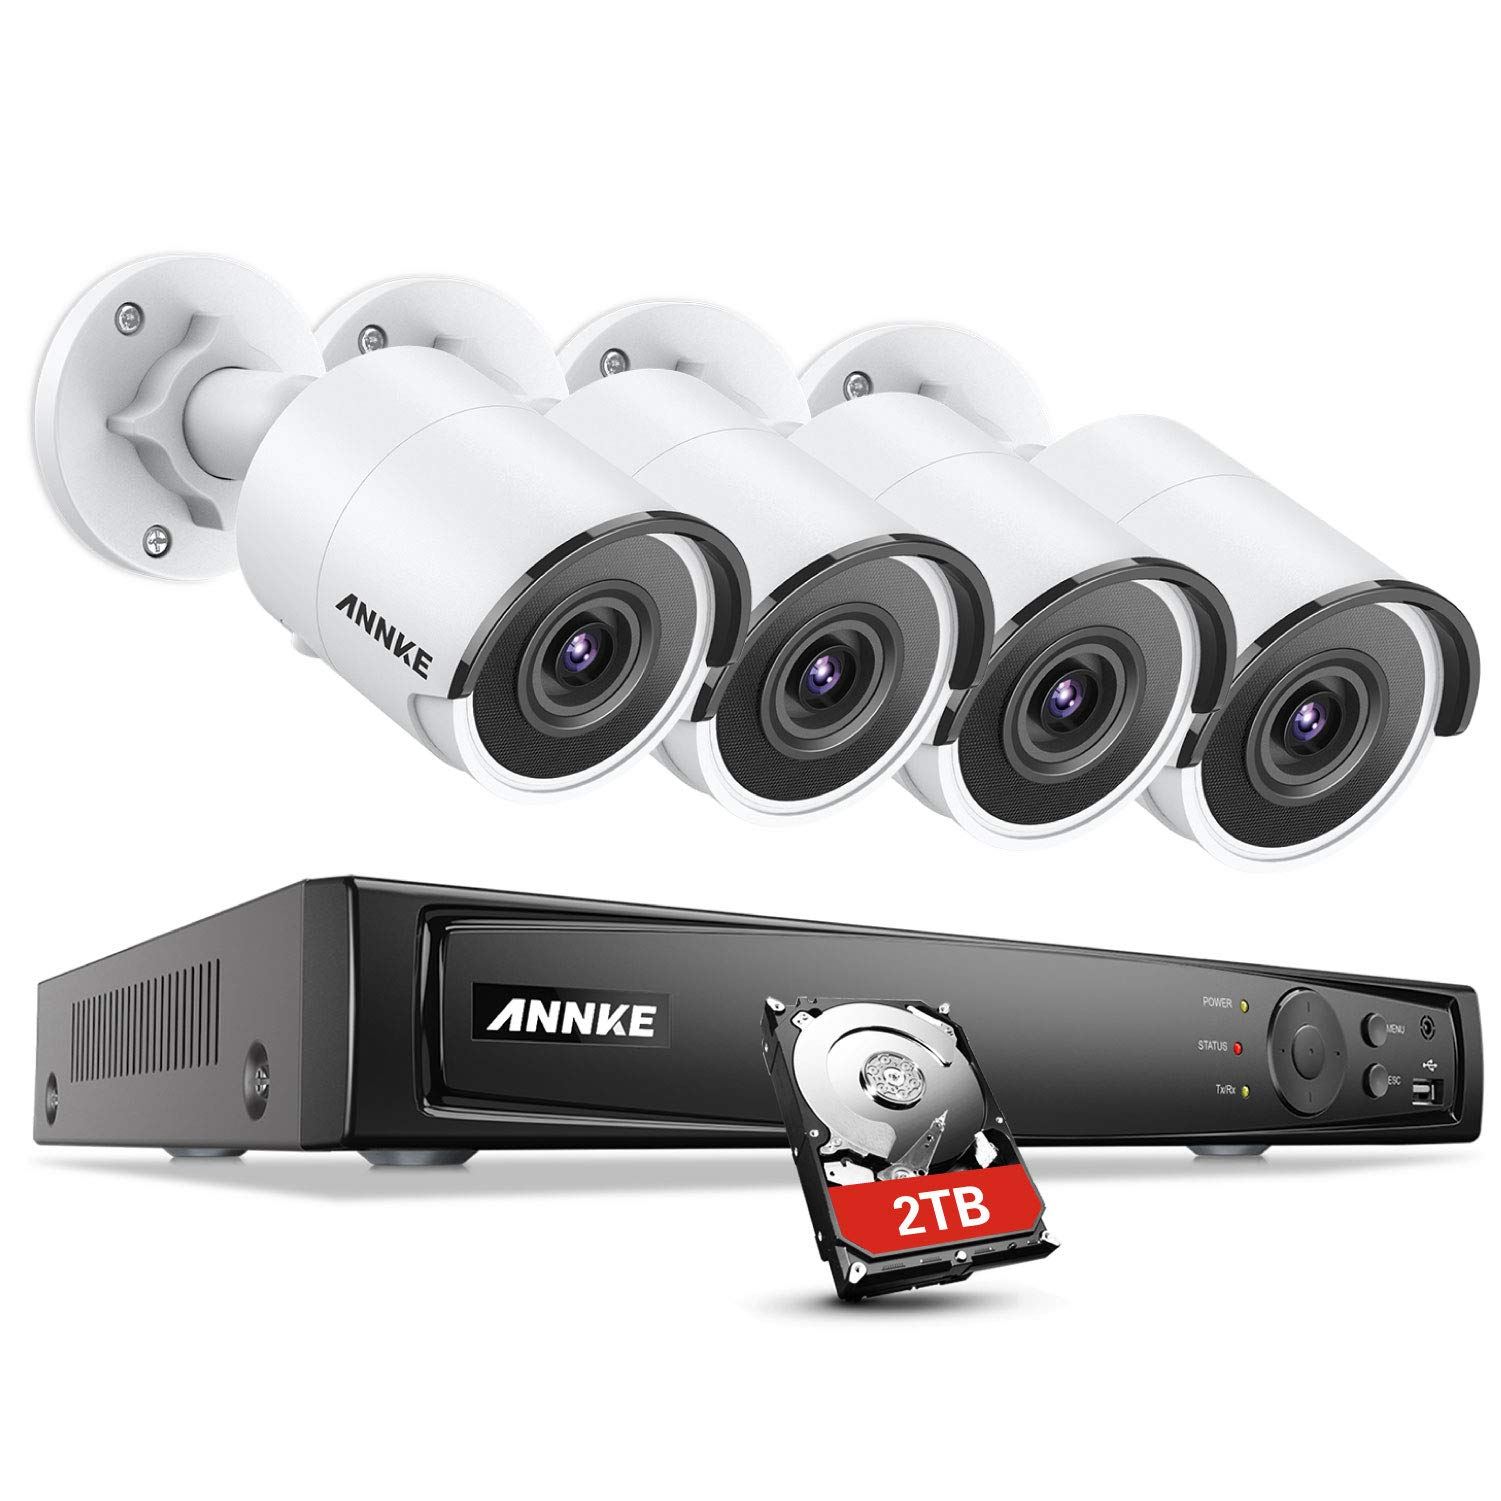 ANNKE 4K PoE Security Camera System 8CH H.265 NVR and 4pcs Ultra HD 8MP Outdoor Wired IP Cameras 2TB HDD, 100ft Night Vision,IP67 Weatherproof, Video Surveillance with Motion Detect Smart Playback